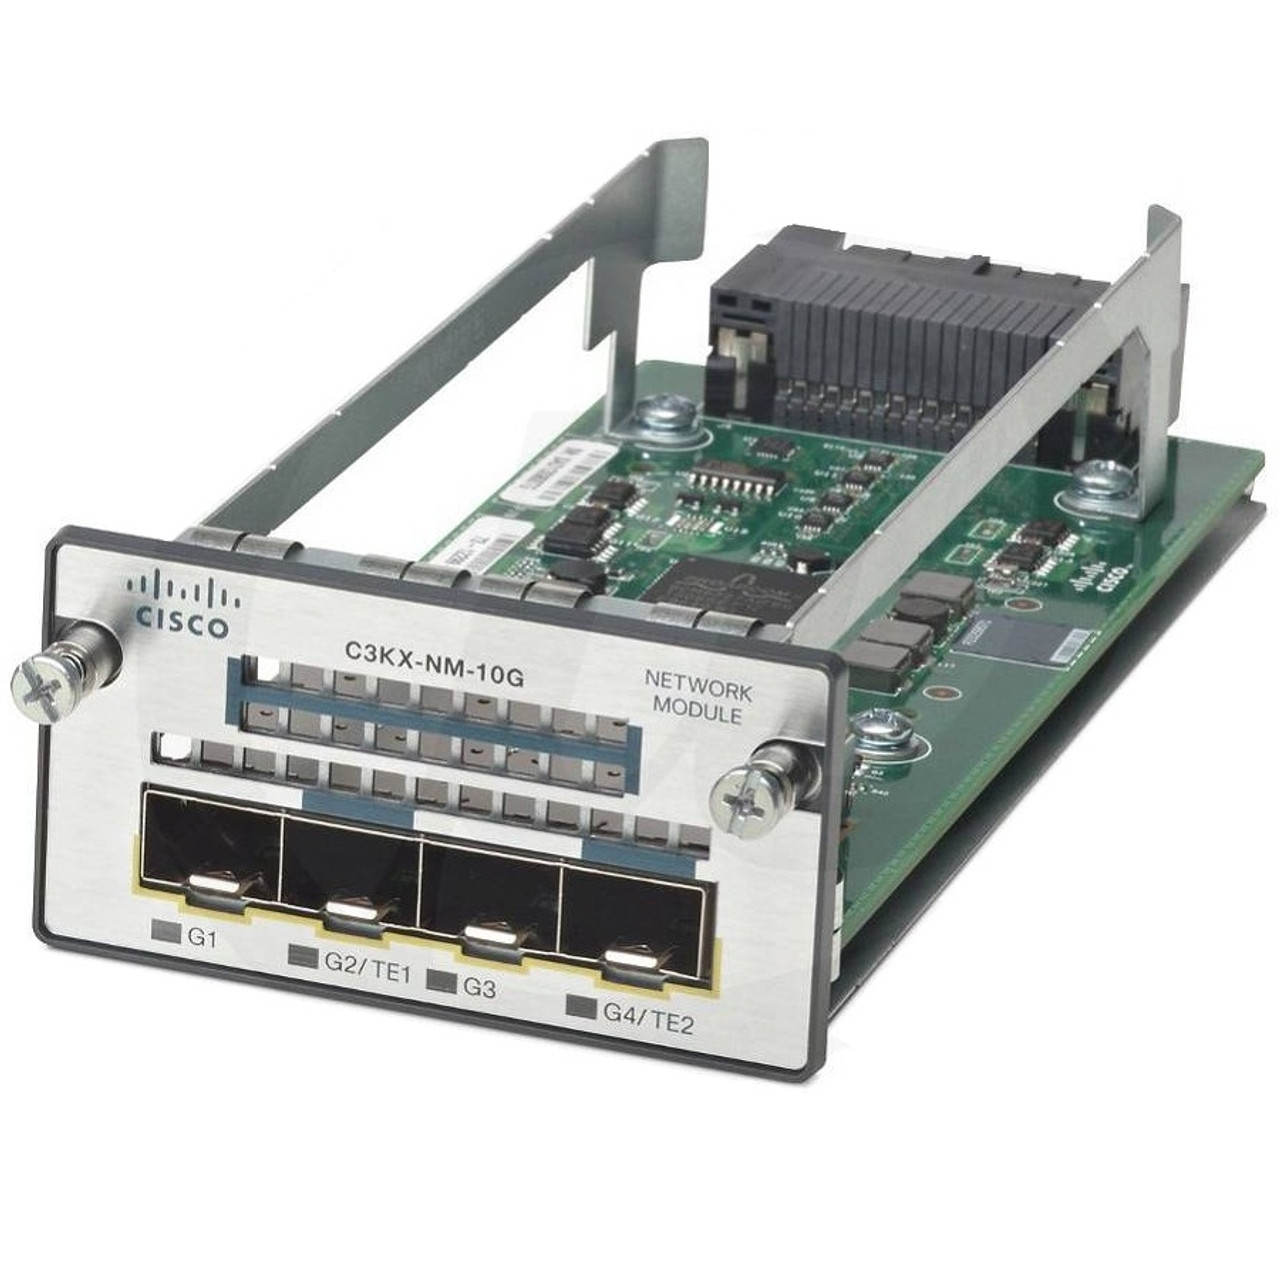 Cisco Expansion Module 10Gb Ethernet x 2 RJ-45